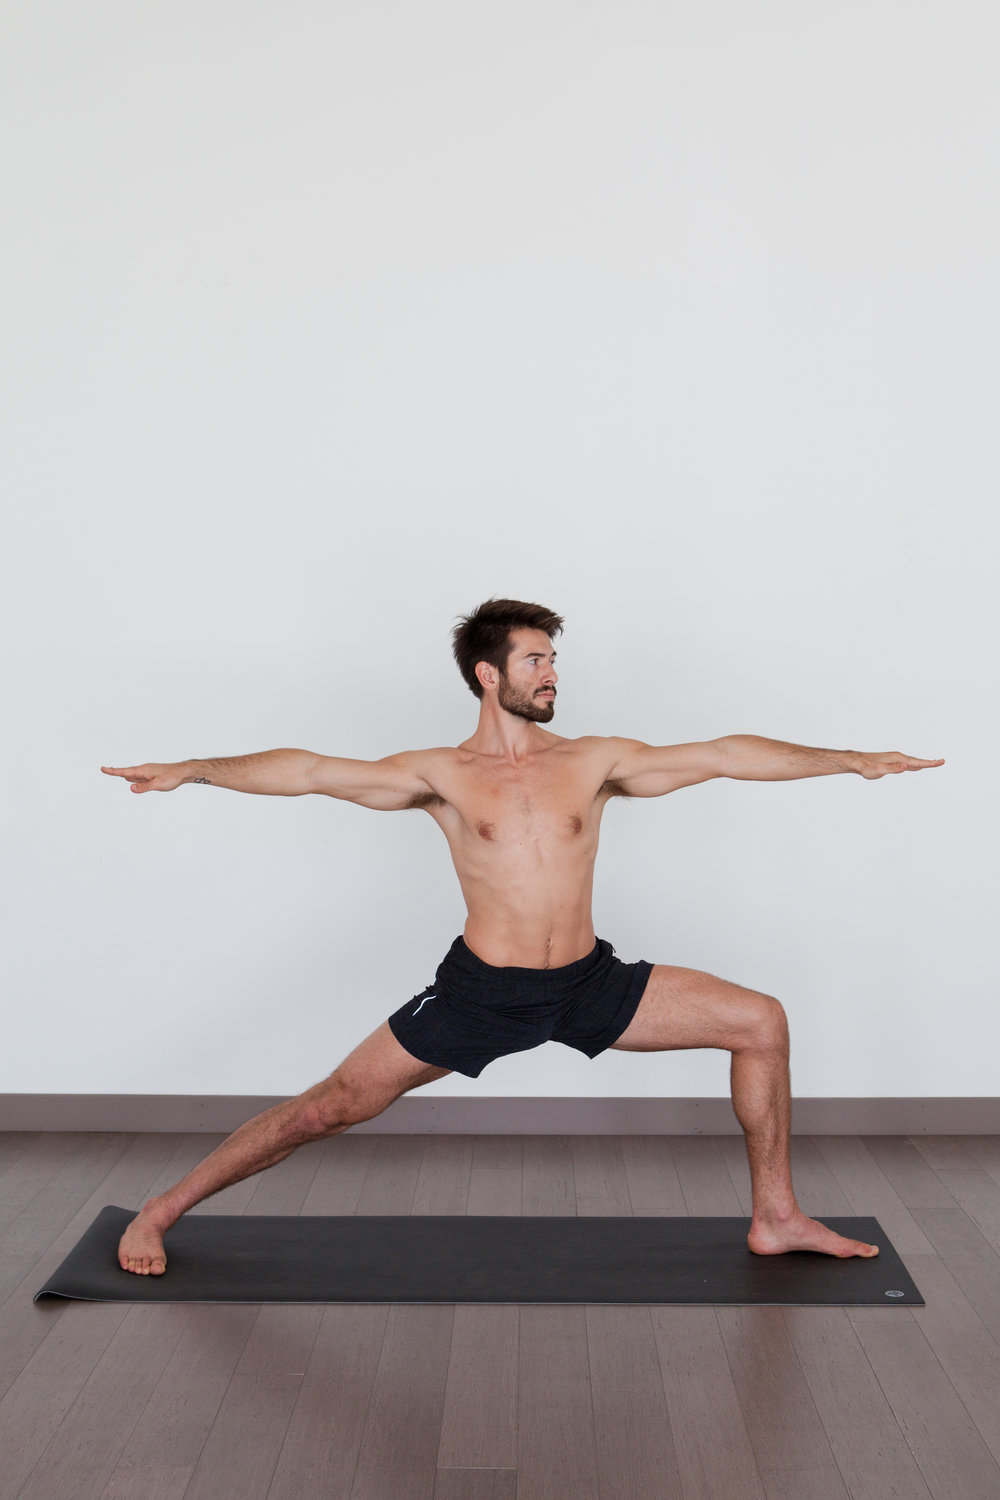 same yogasame teachernew movements - Tim Senesi Yoga is a place for you to connect, grow, and gain access to functional movement exercise, cross training and strength training, as well as the same style Yoga you've come to love.